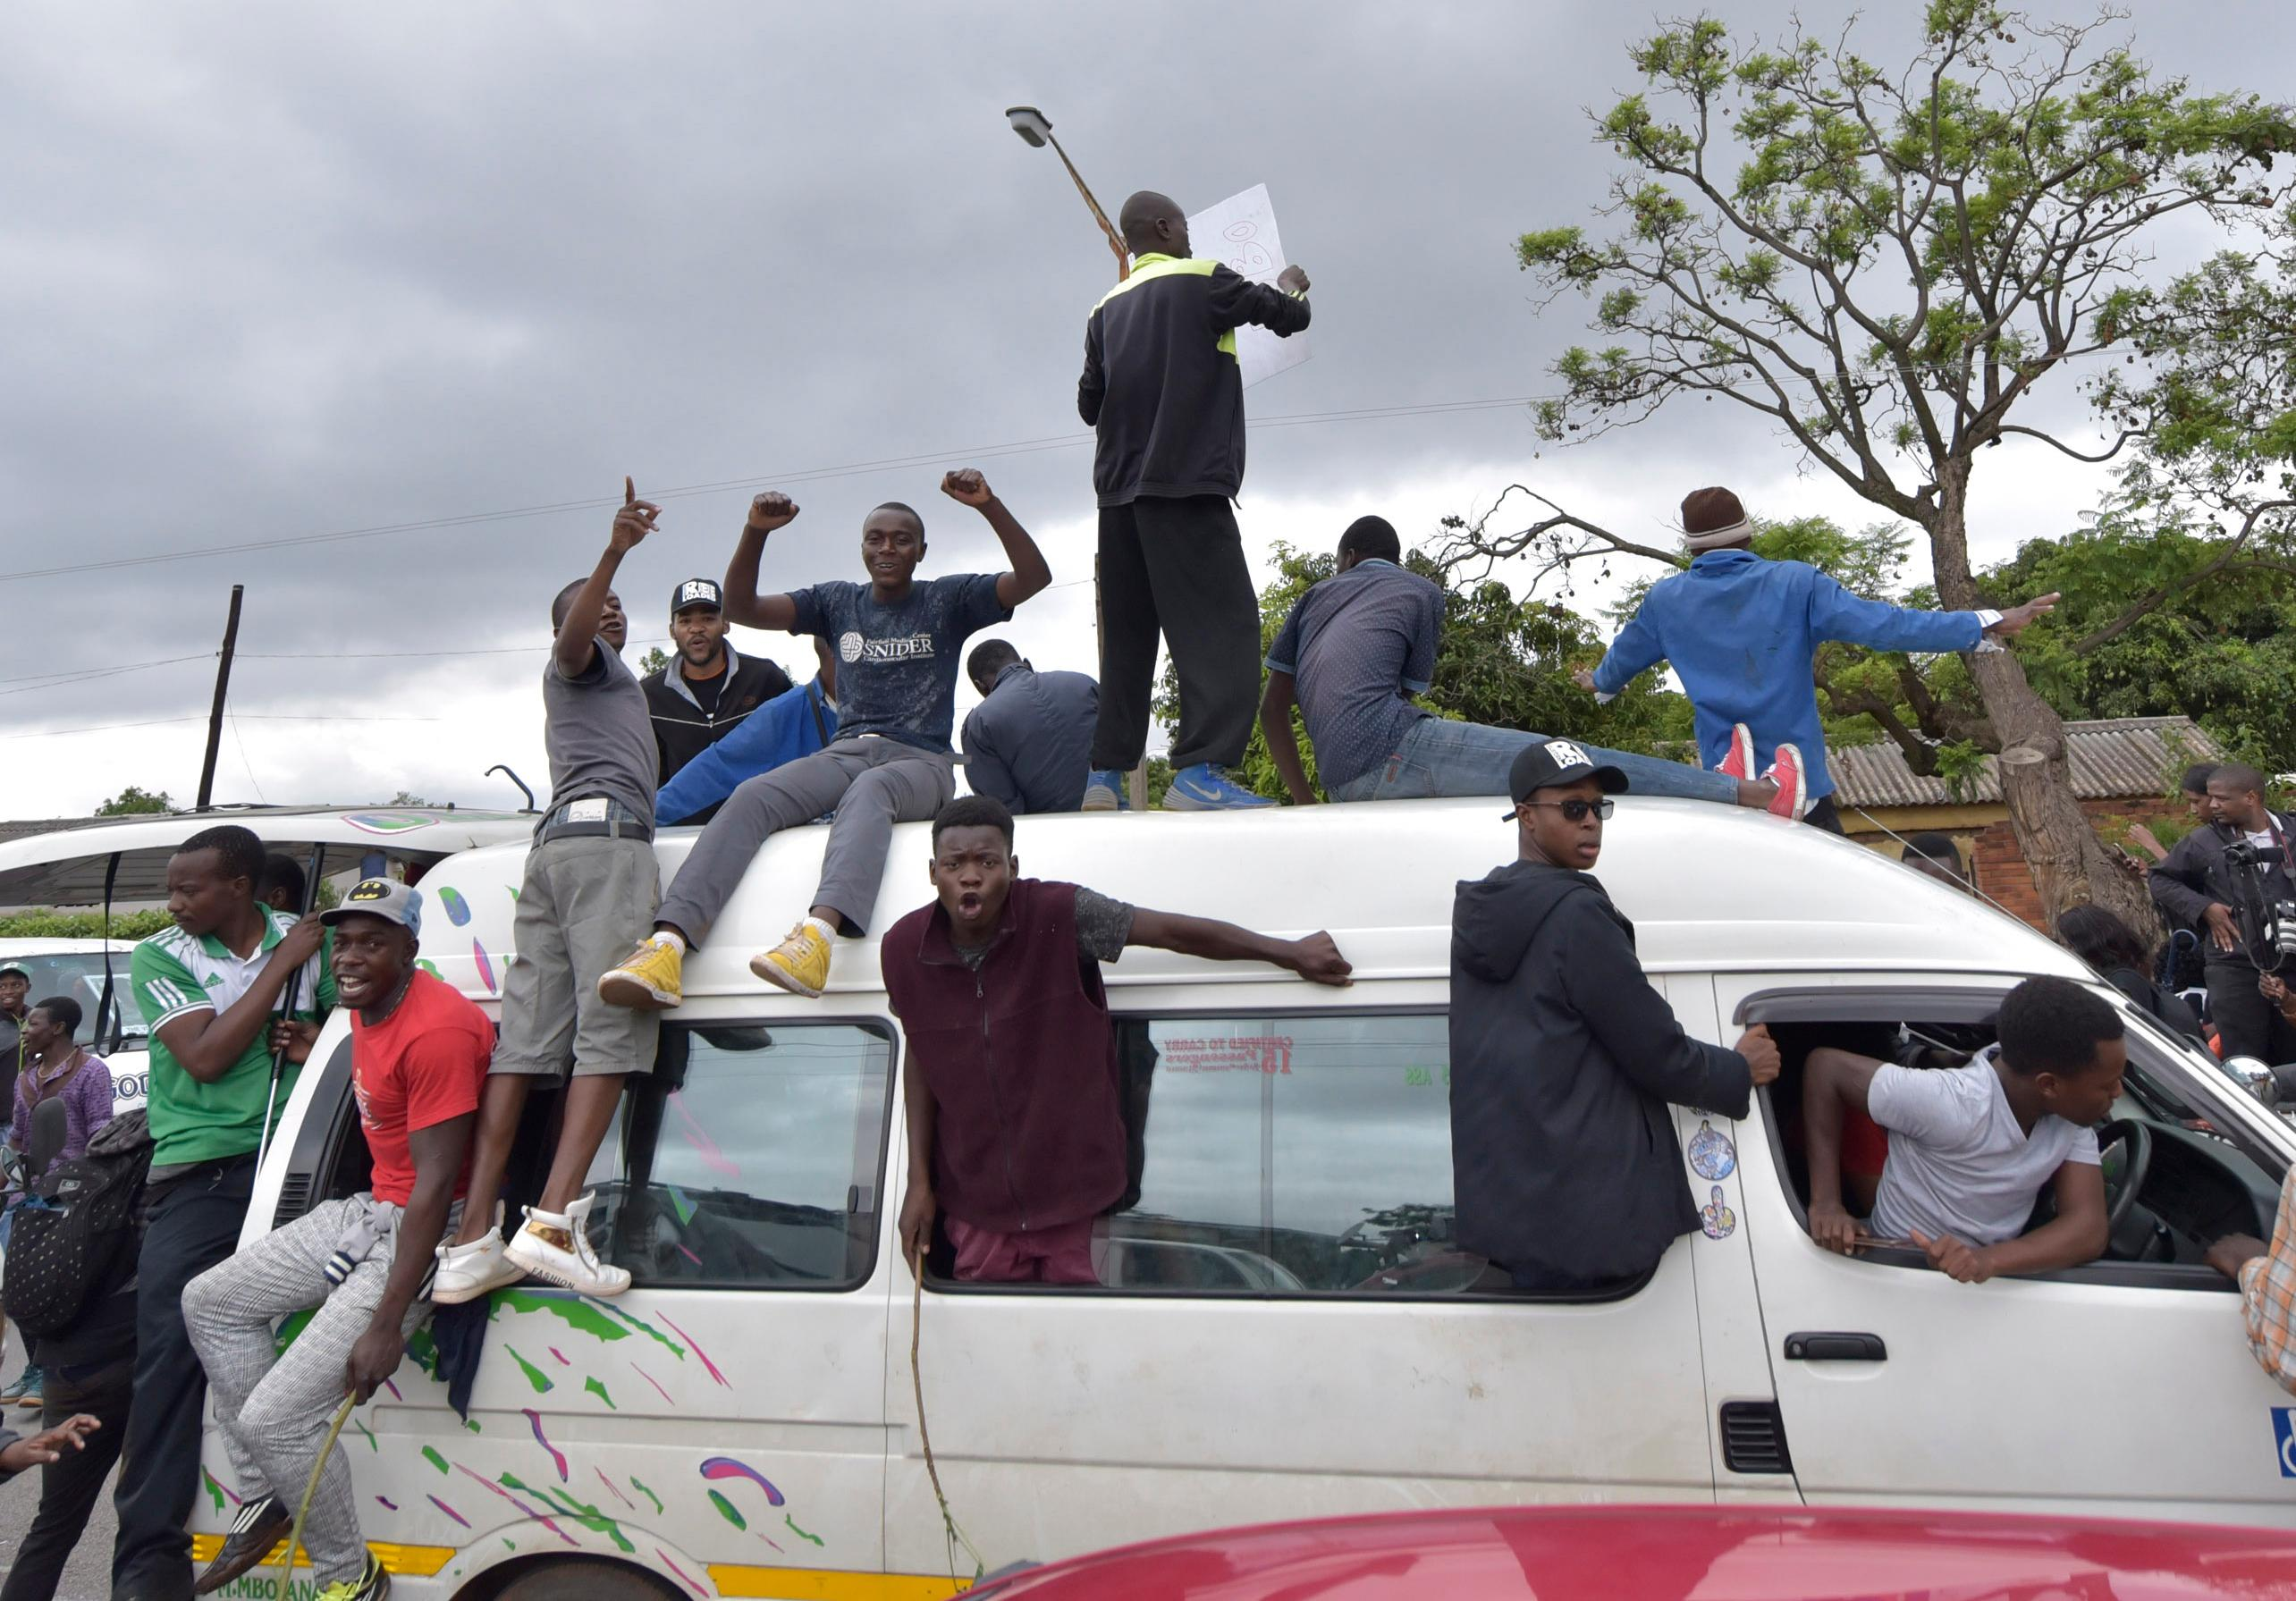 People cheer from the roof of a vehicle as euphoric crowds of several thousand people gathered in Zimbabwe's capital, Harare Saturday, Nov. 18, 2017 to demand the departure of President Robert Mugabe after nearly four decades in power. The 93-year-old Mugabe, the world's oldest head of state, is said to be asking for more time amid negotiations with regional leaders that seek his exit with a veneer of dignity. (AP Photo)